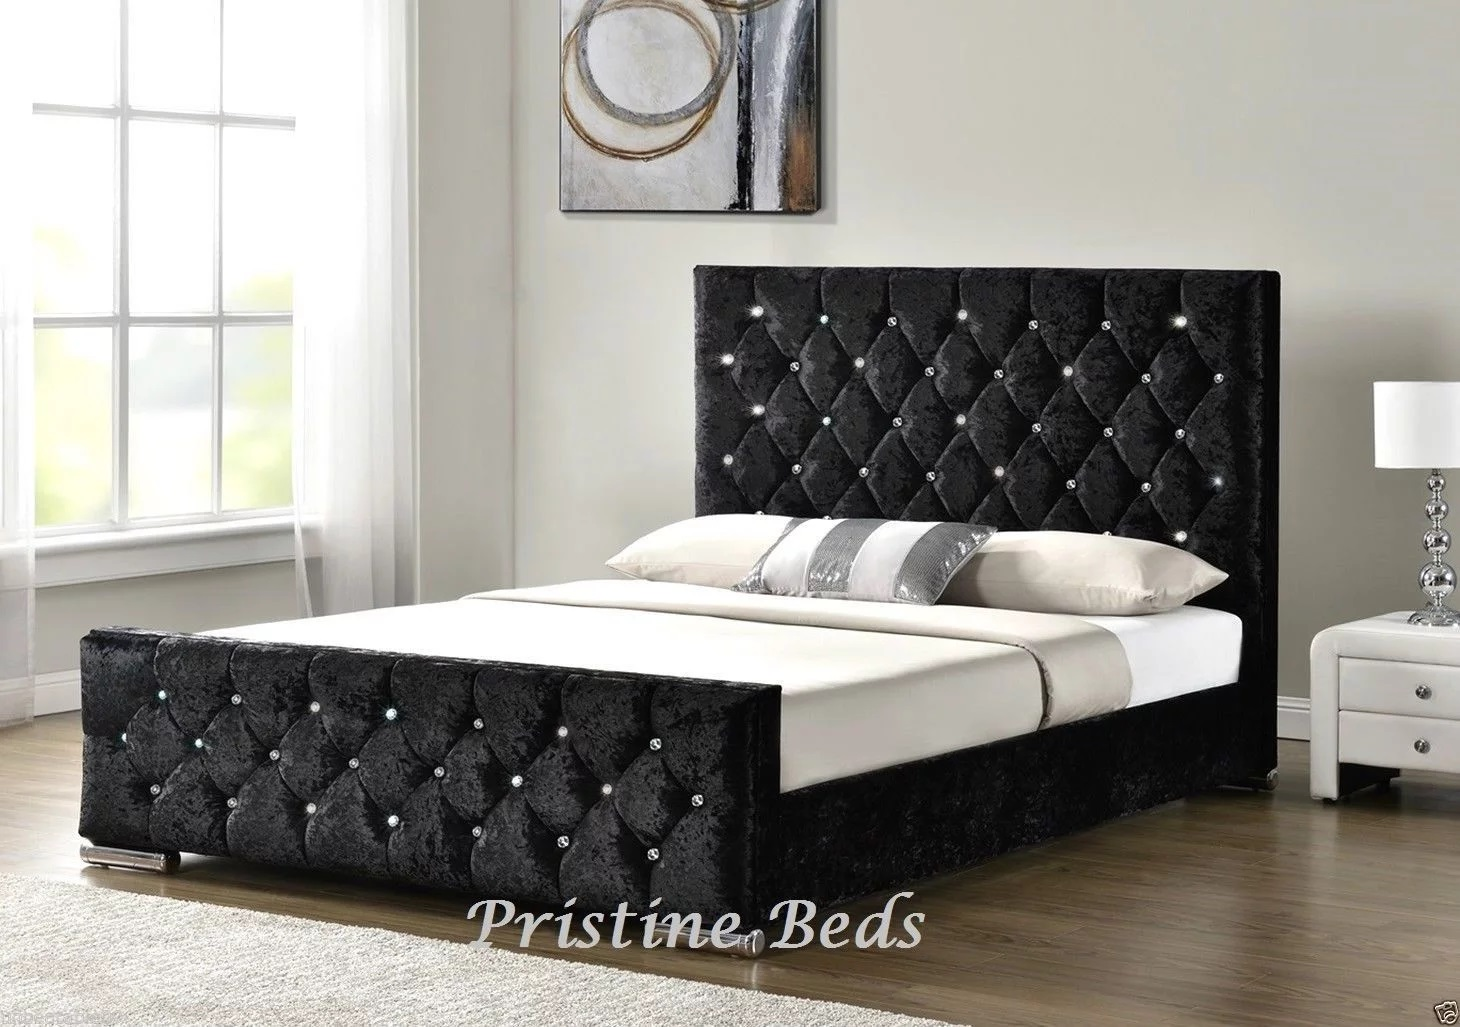 Pristine Beds Milan Sleigh Bed